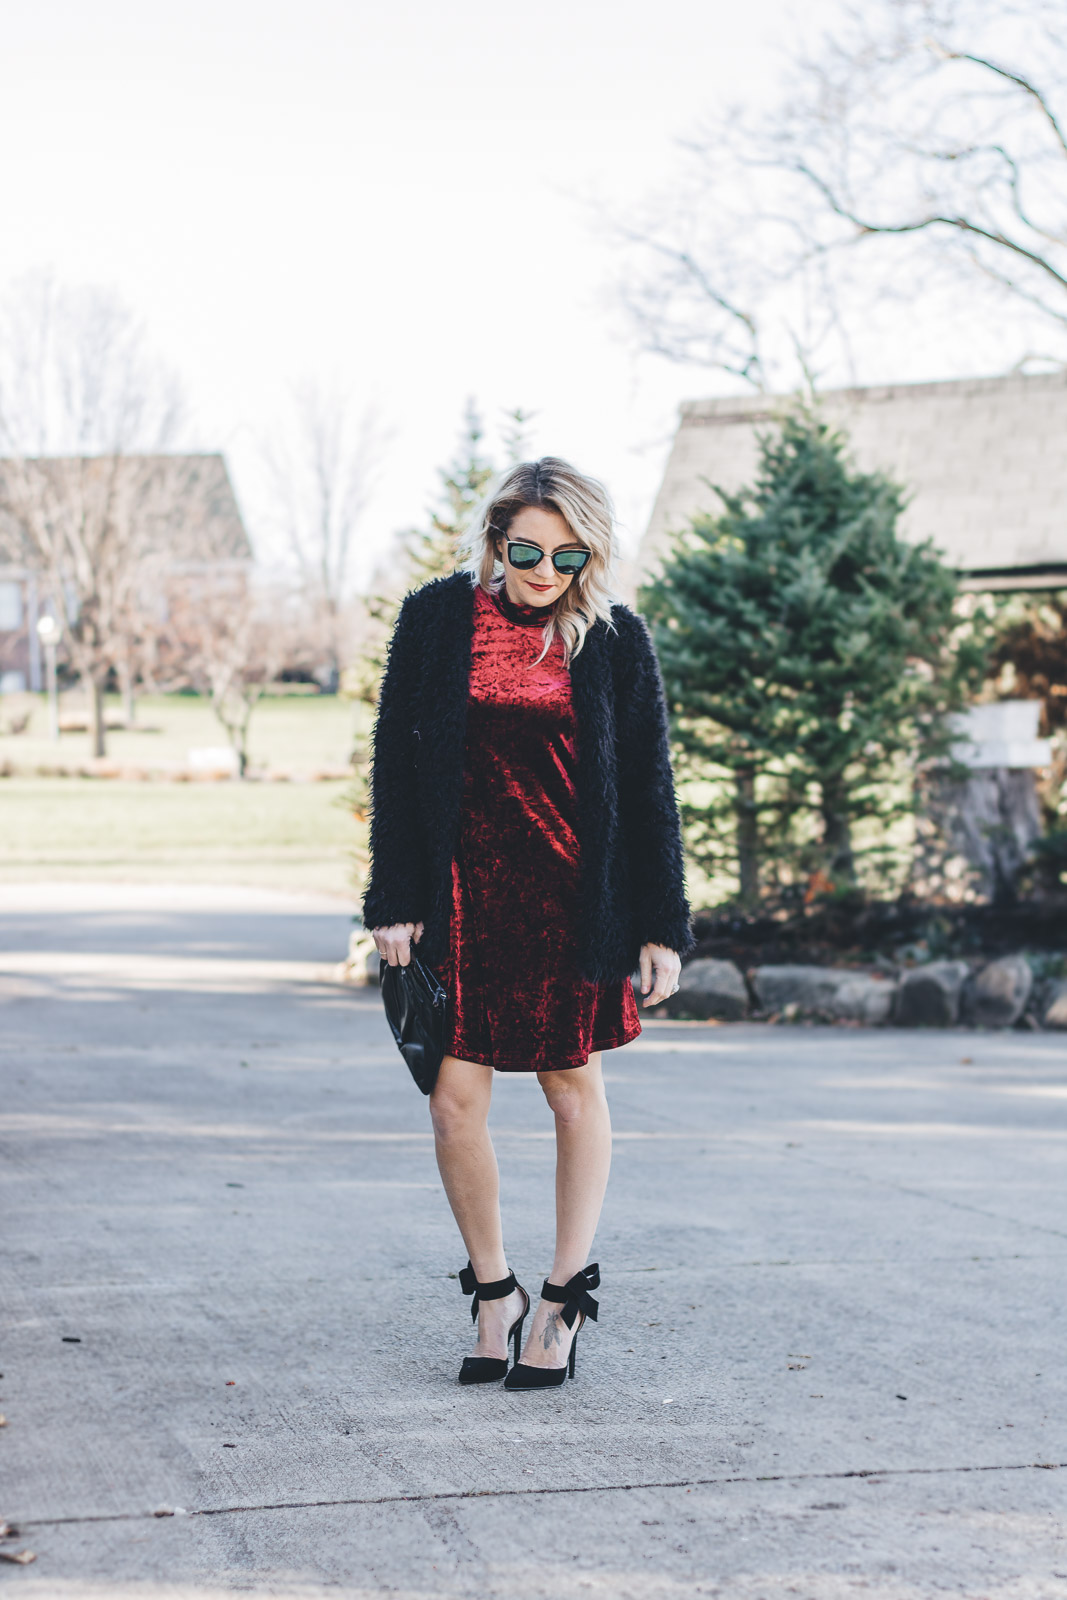 Red velvet dress with black accents for the holidays.